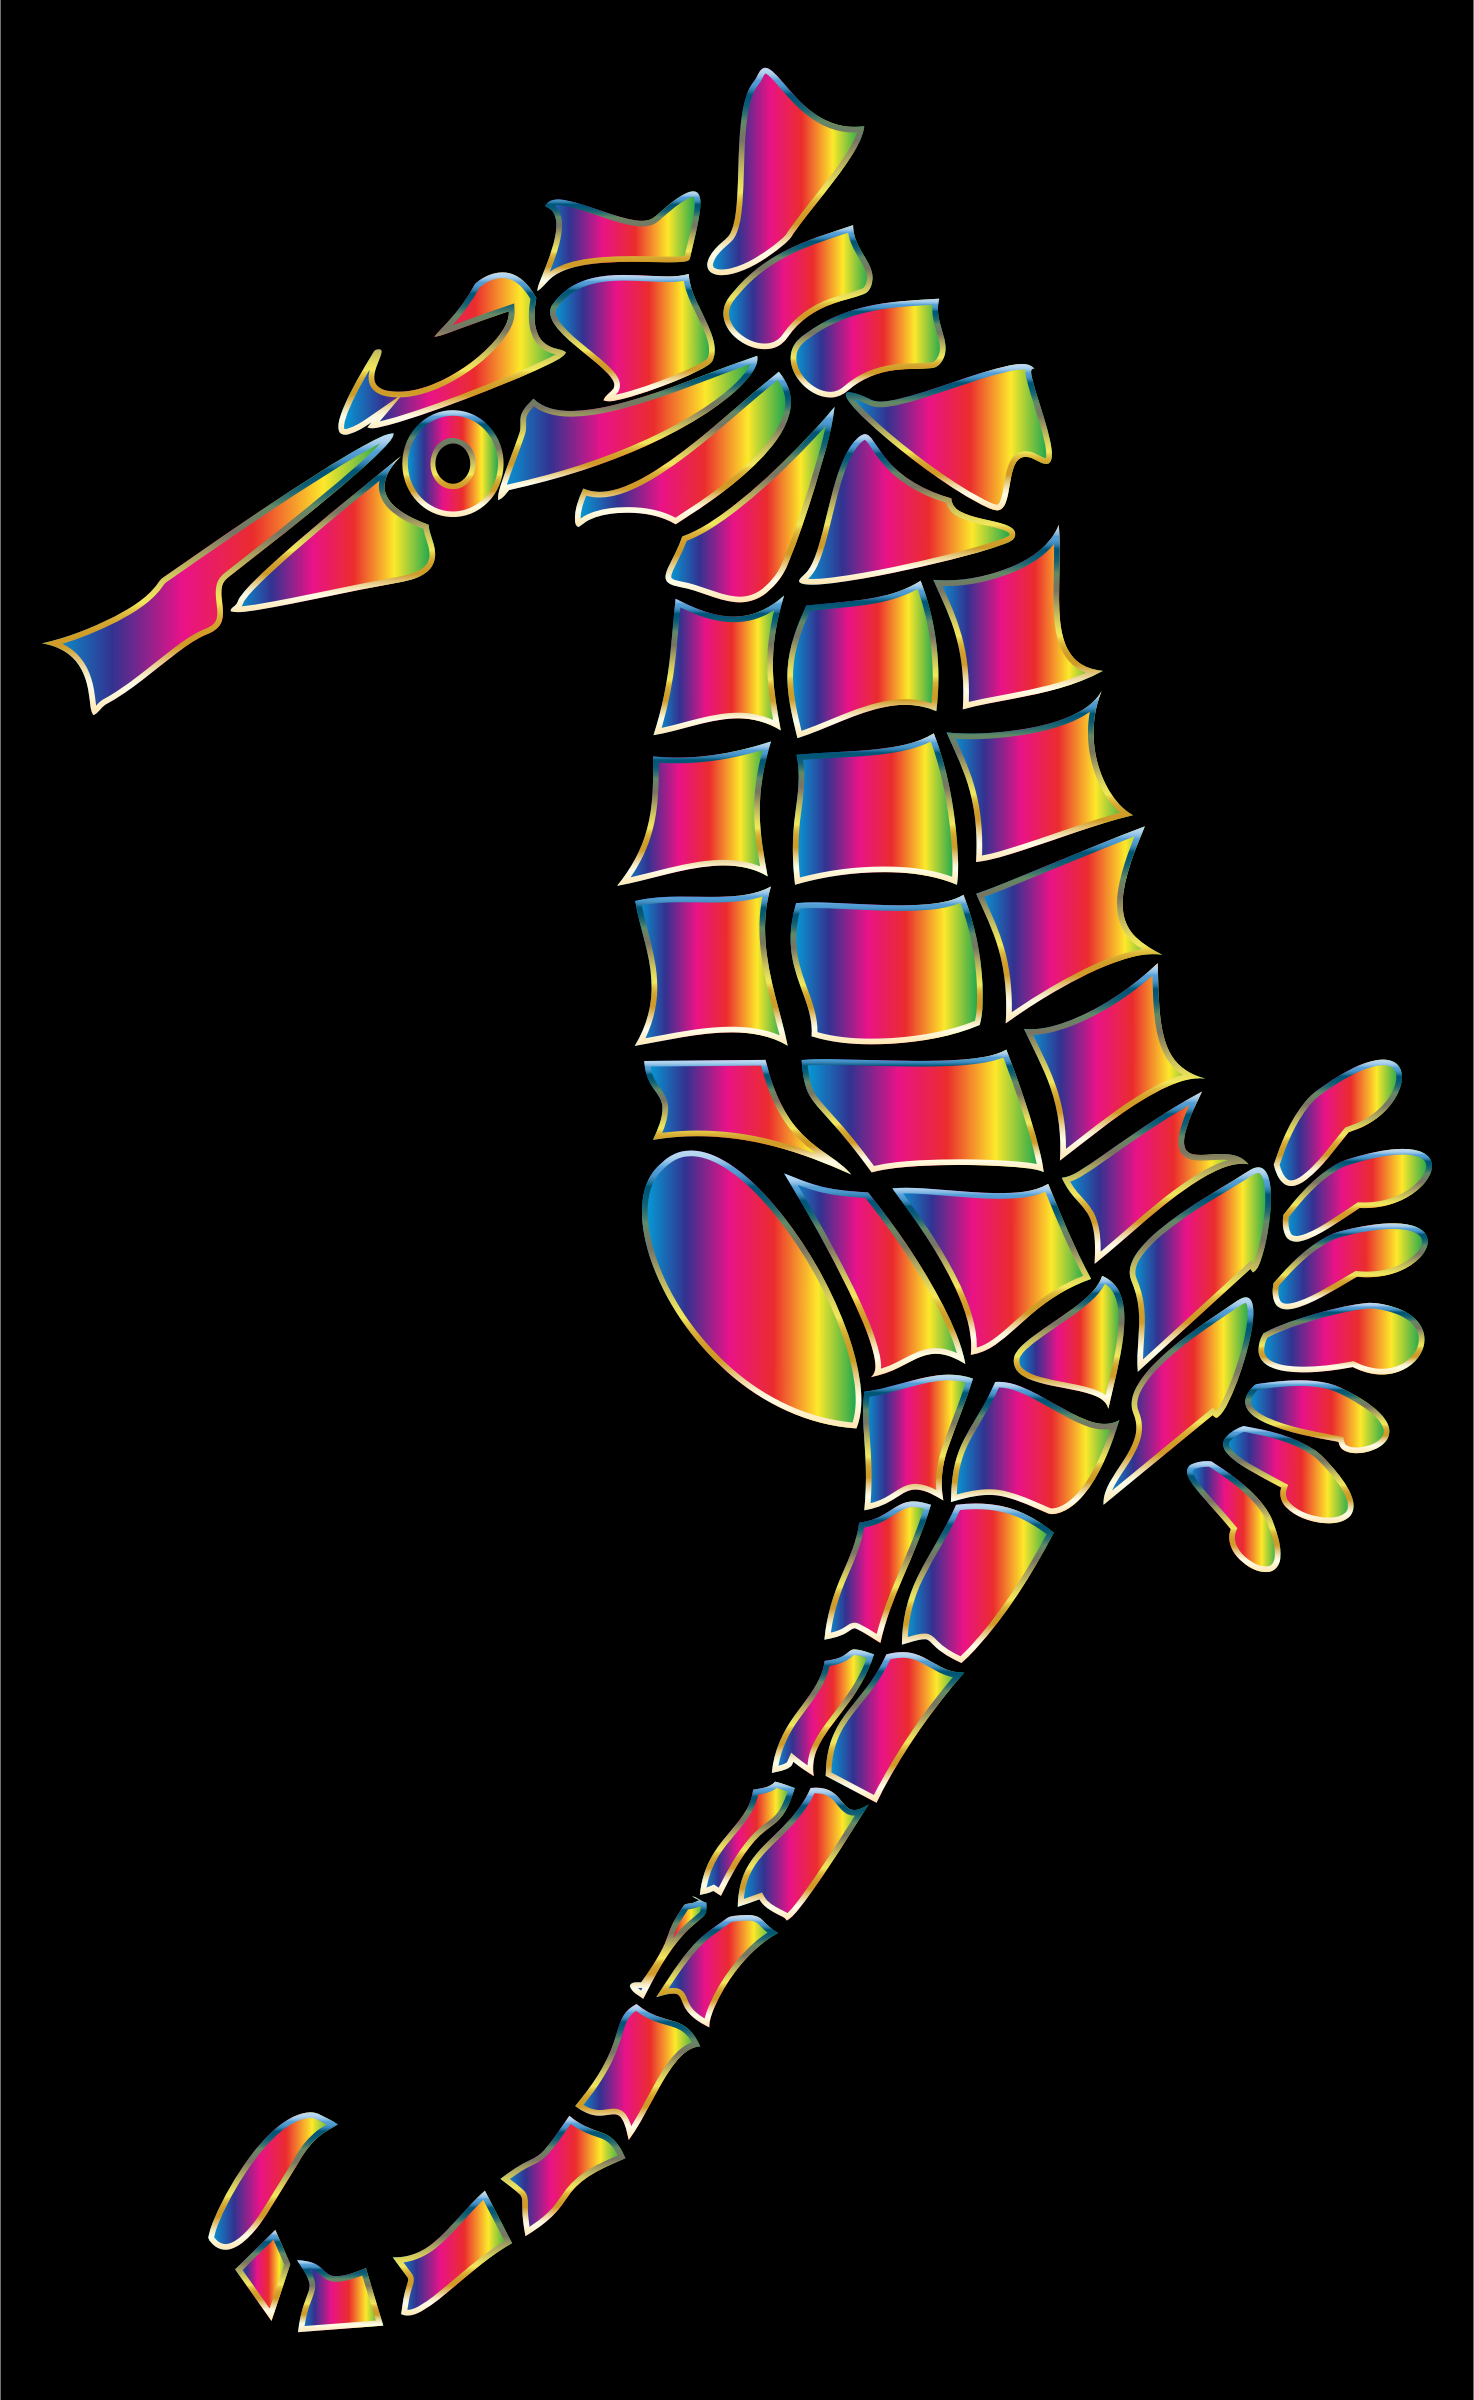 Spectral Stylized Seahorse Silhouette by GDJ